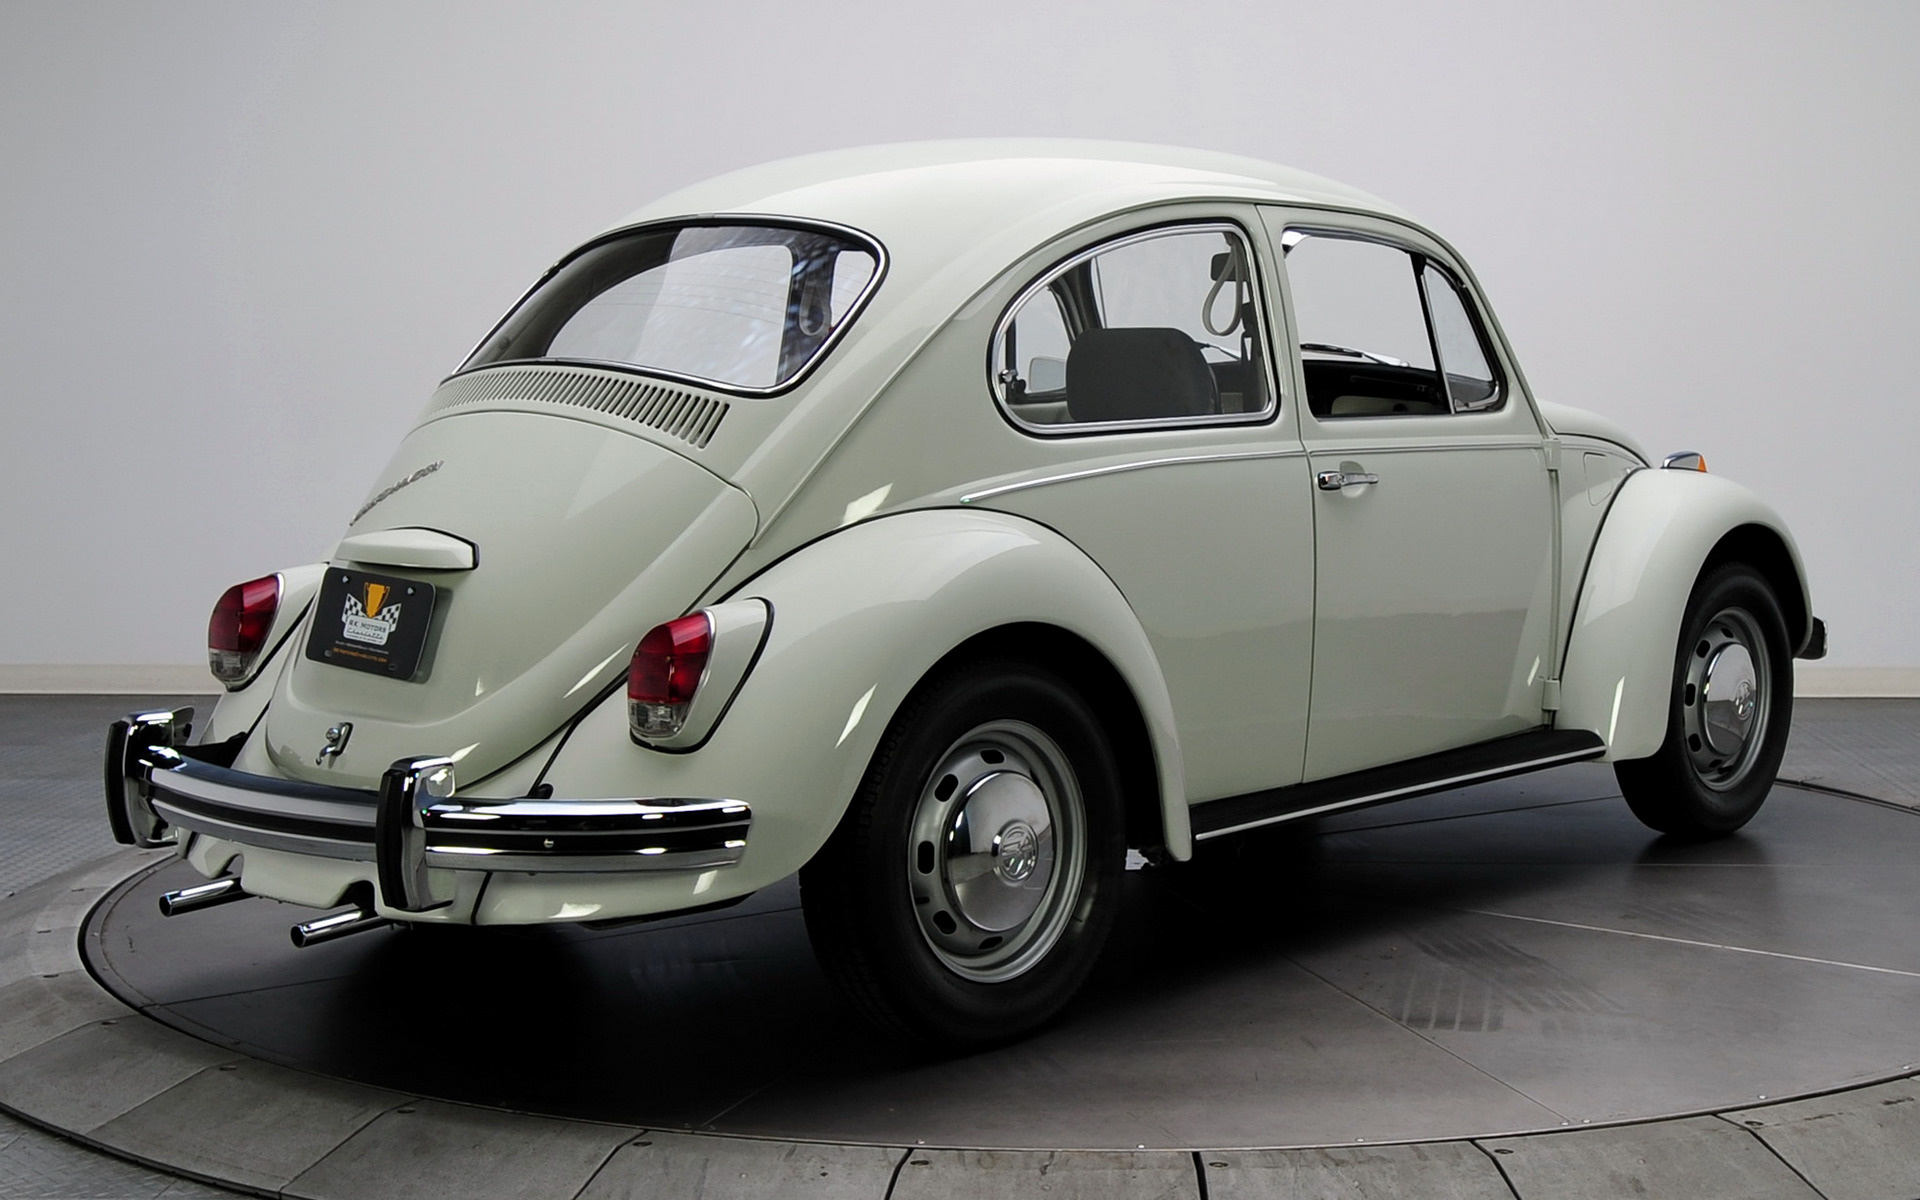 Volkswagen Beetle (1968) Wallpapers and HD Images - Car Pixel